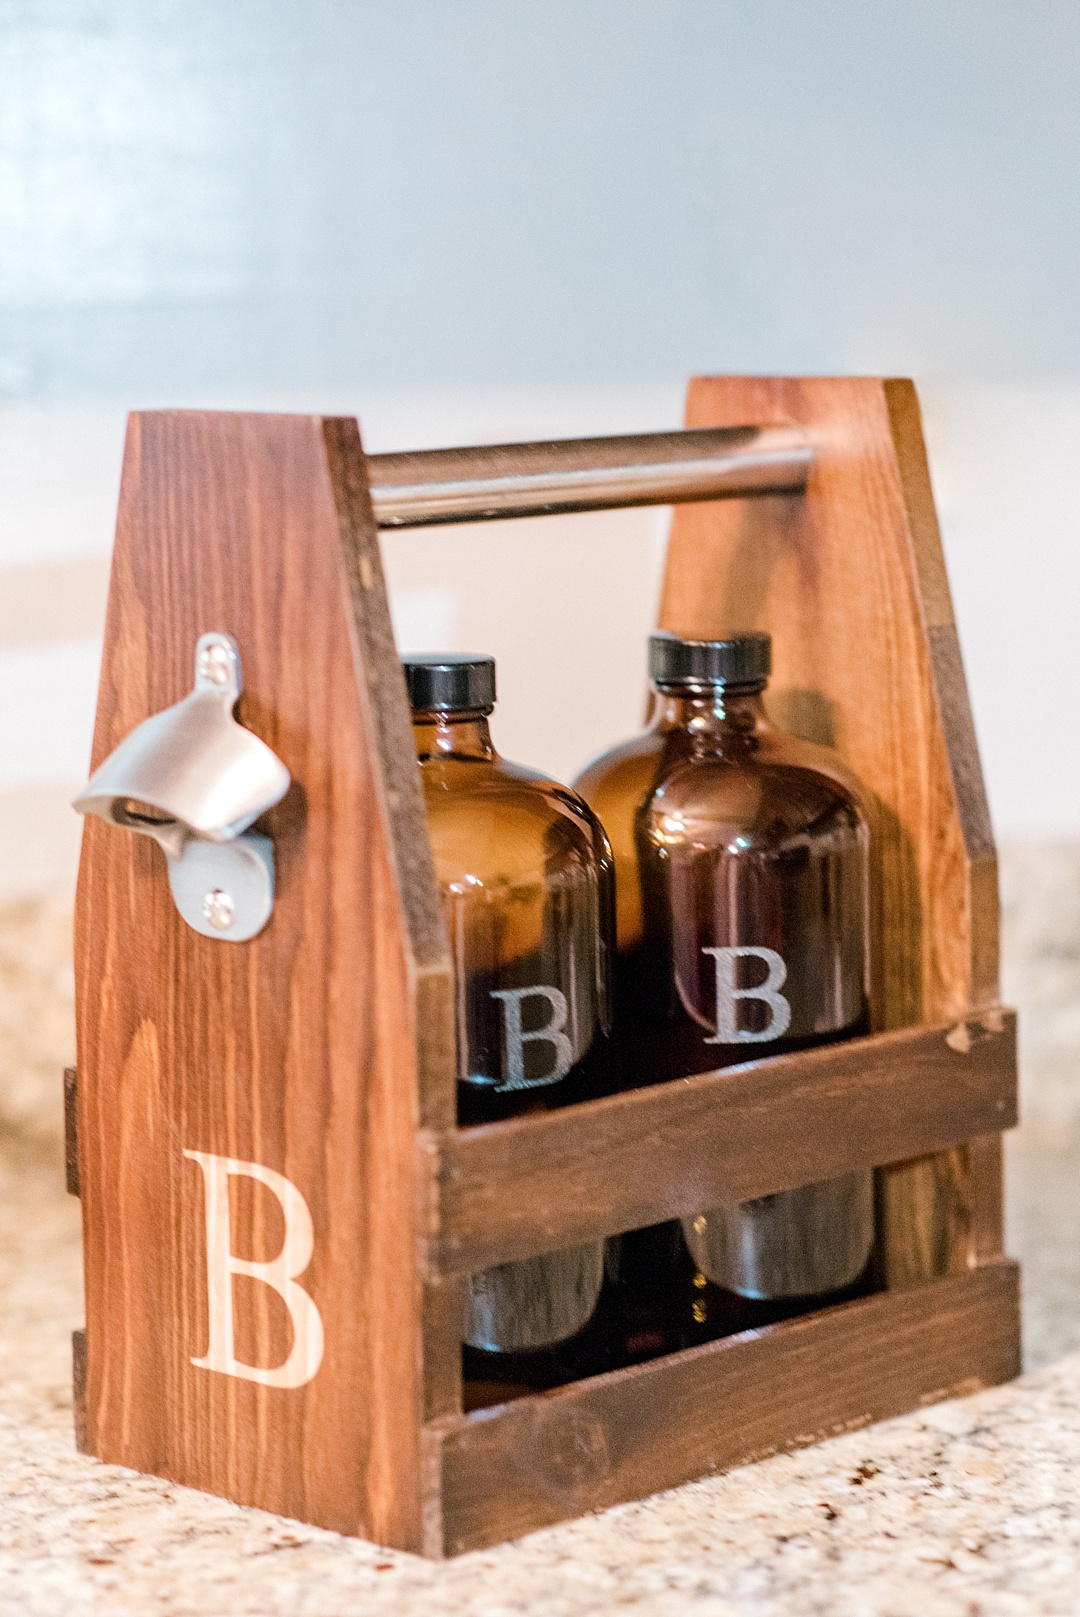 growlers and caddy groomsmen gifts wedding gifts personalized monogrammed wedding gifts melissa brewer photography greenville sc wedding photographer